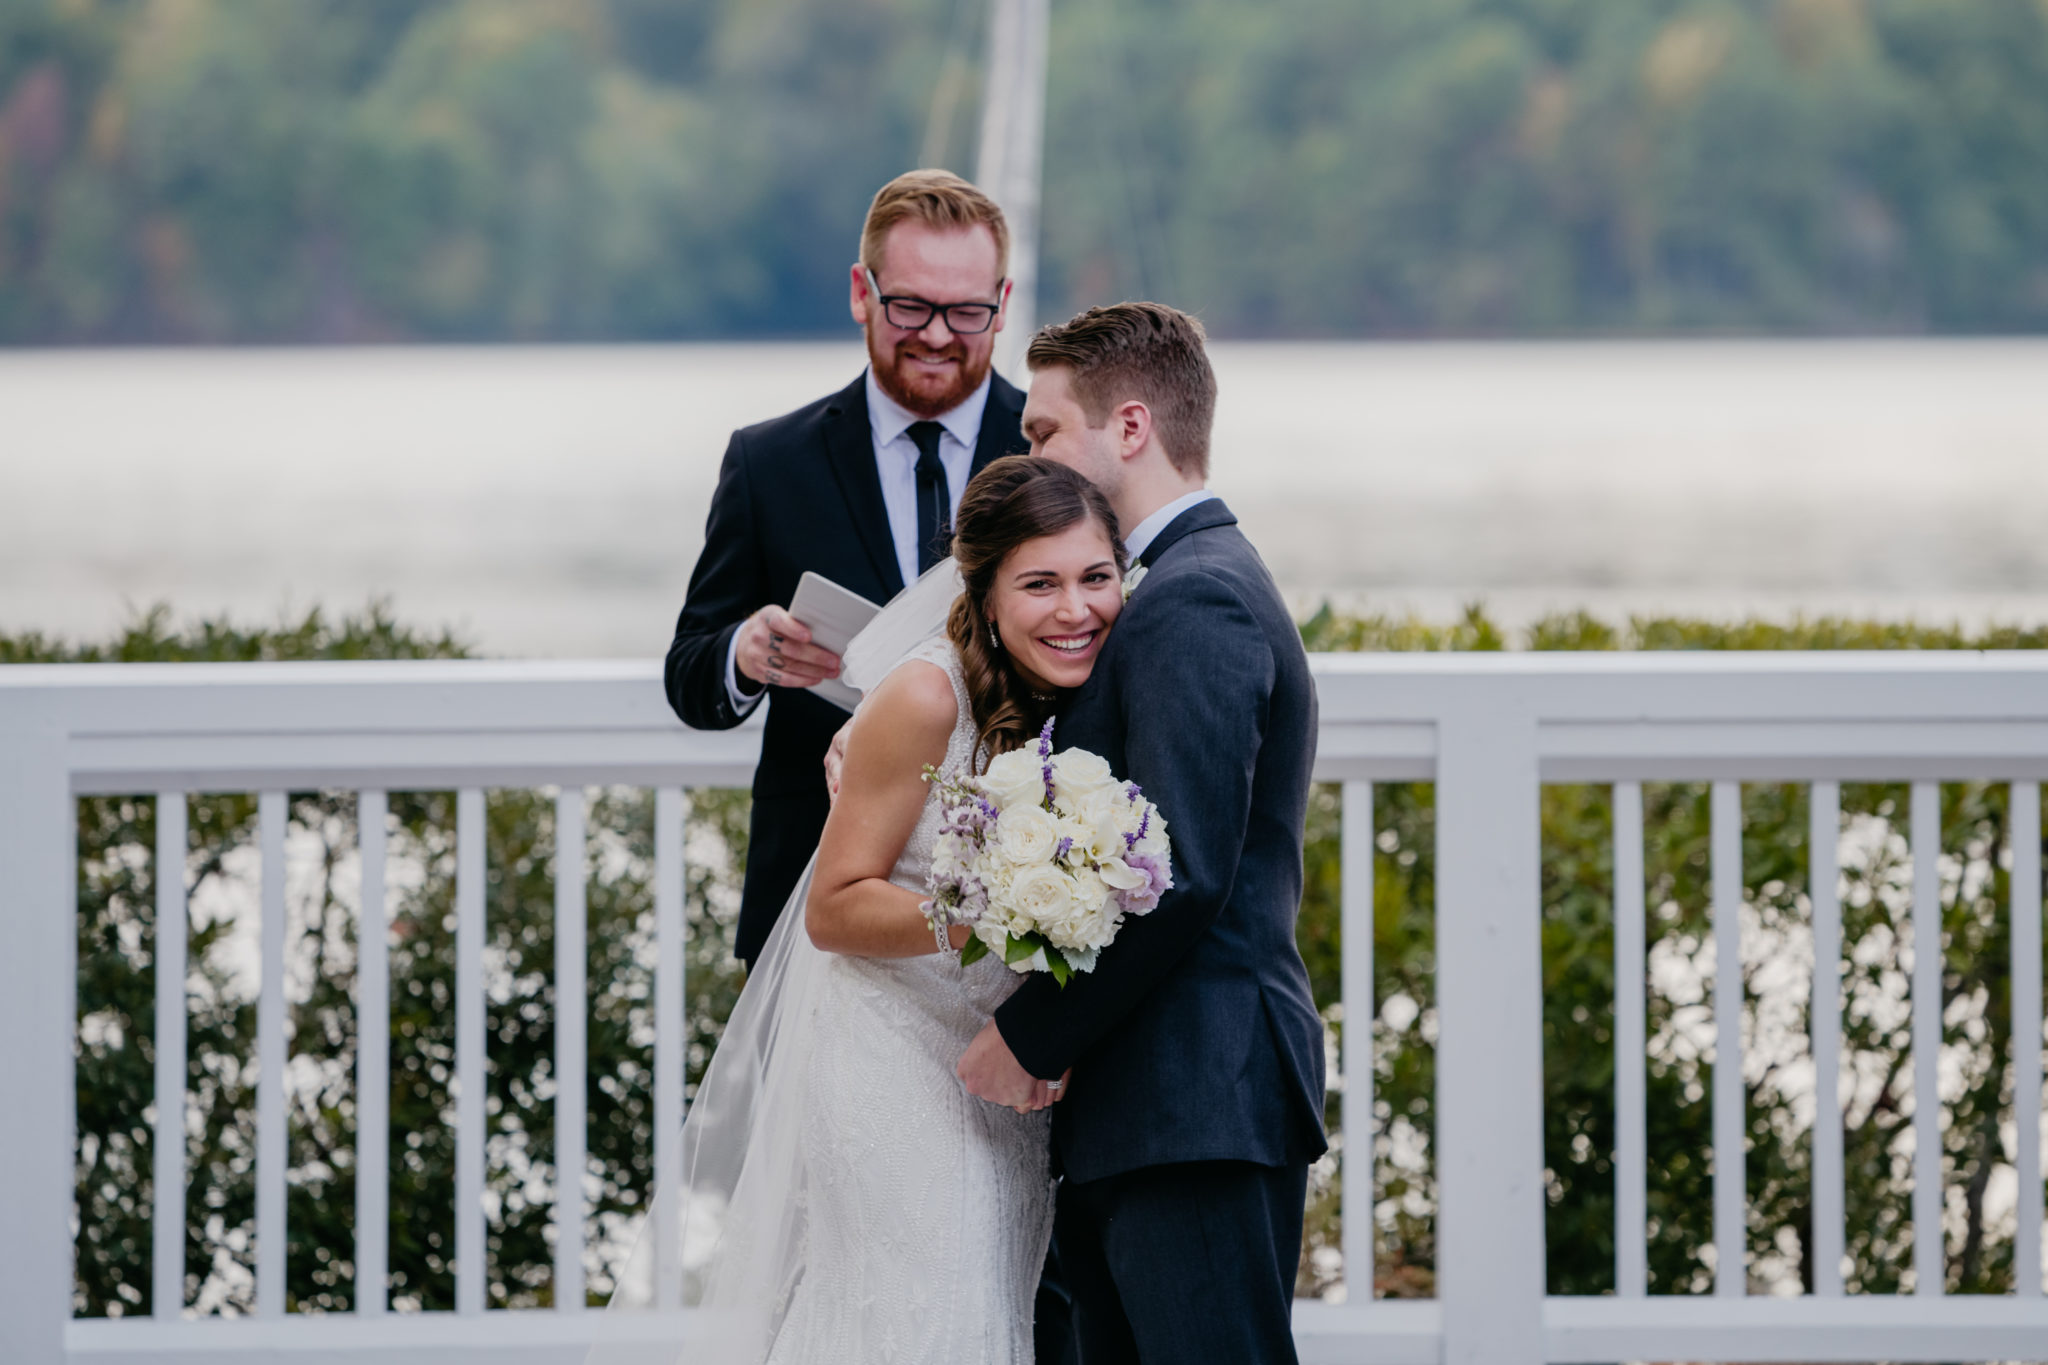 richmond wedding photography and videography